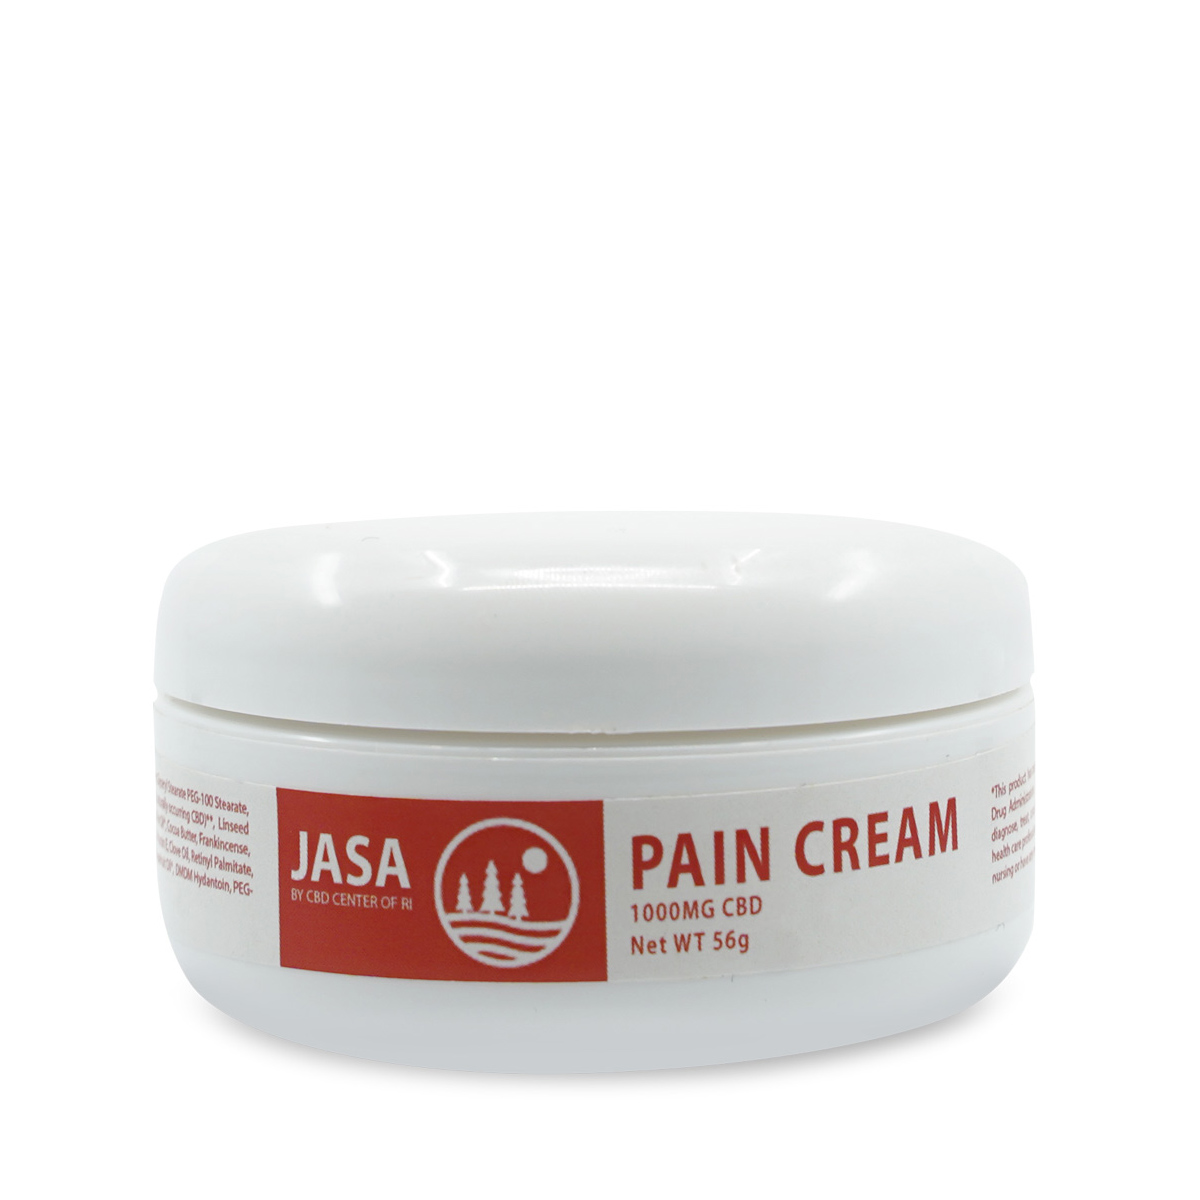 JAVA-Pain-Cream CBC Center of RI